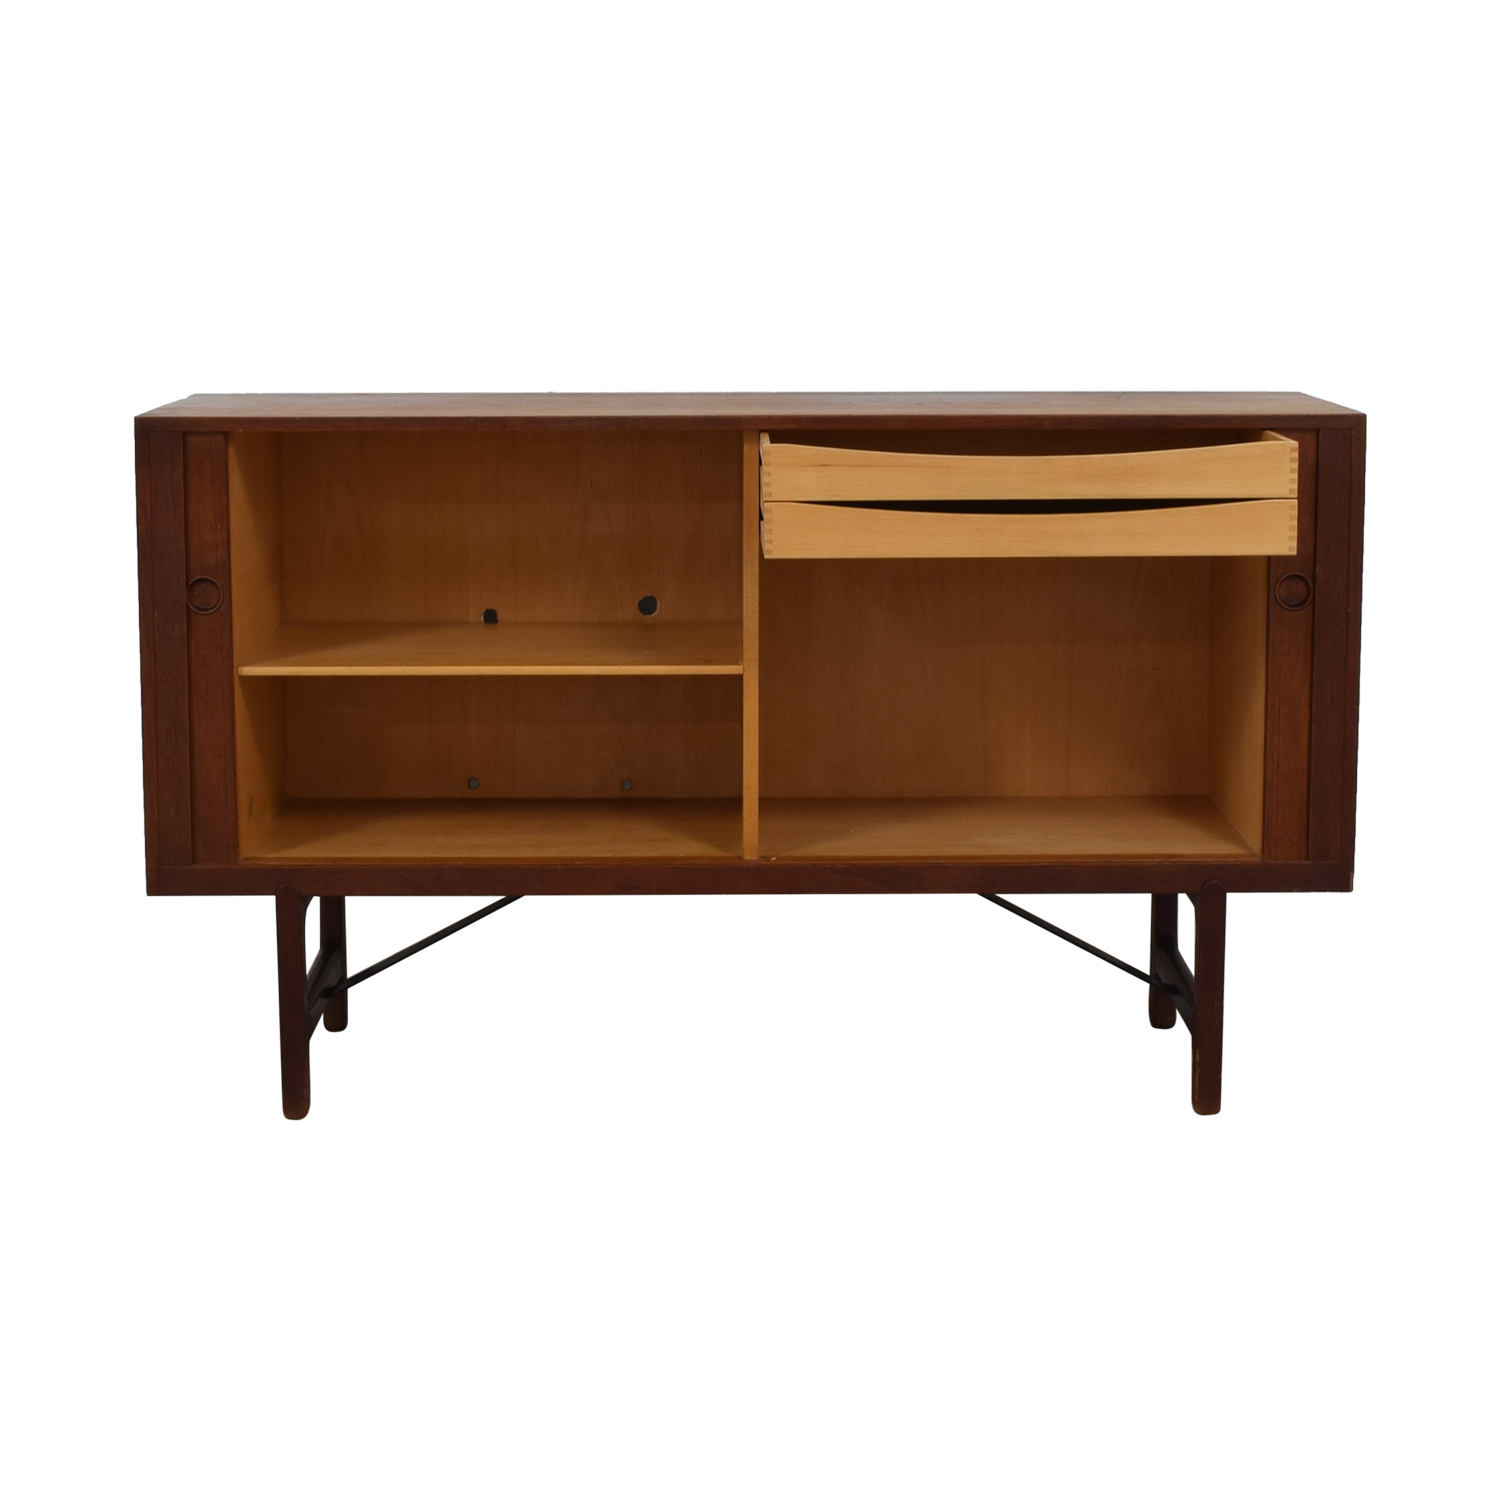 ABC Carpet & Home ABC Carpet & Home Danish Wood Two-Drawer Sideboard discount